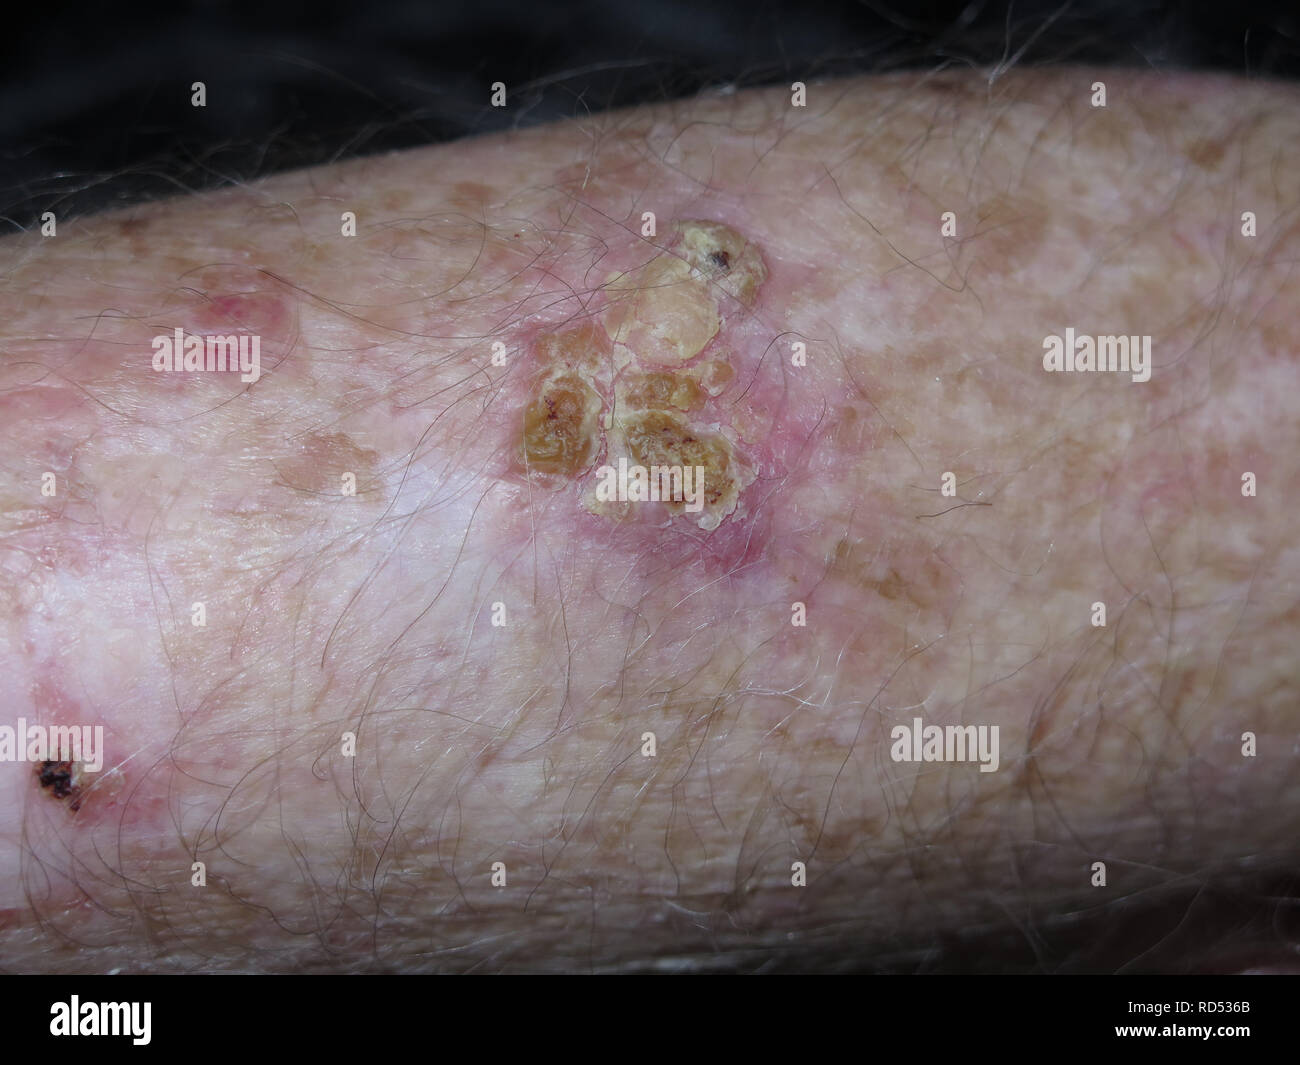 Skin Merkel cell cancer on arm and head of male patient - Stock Image